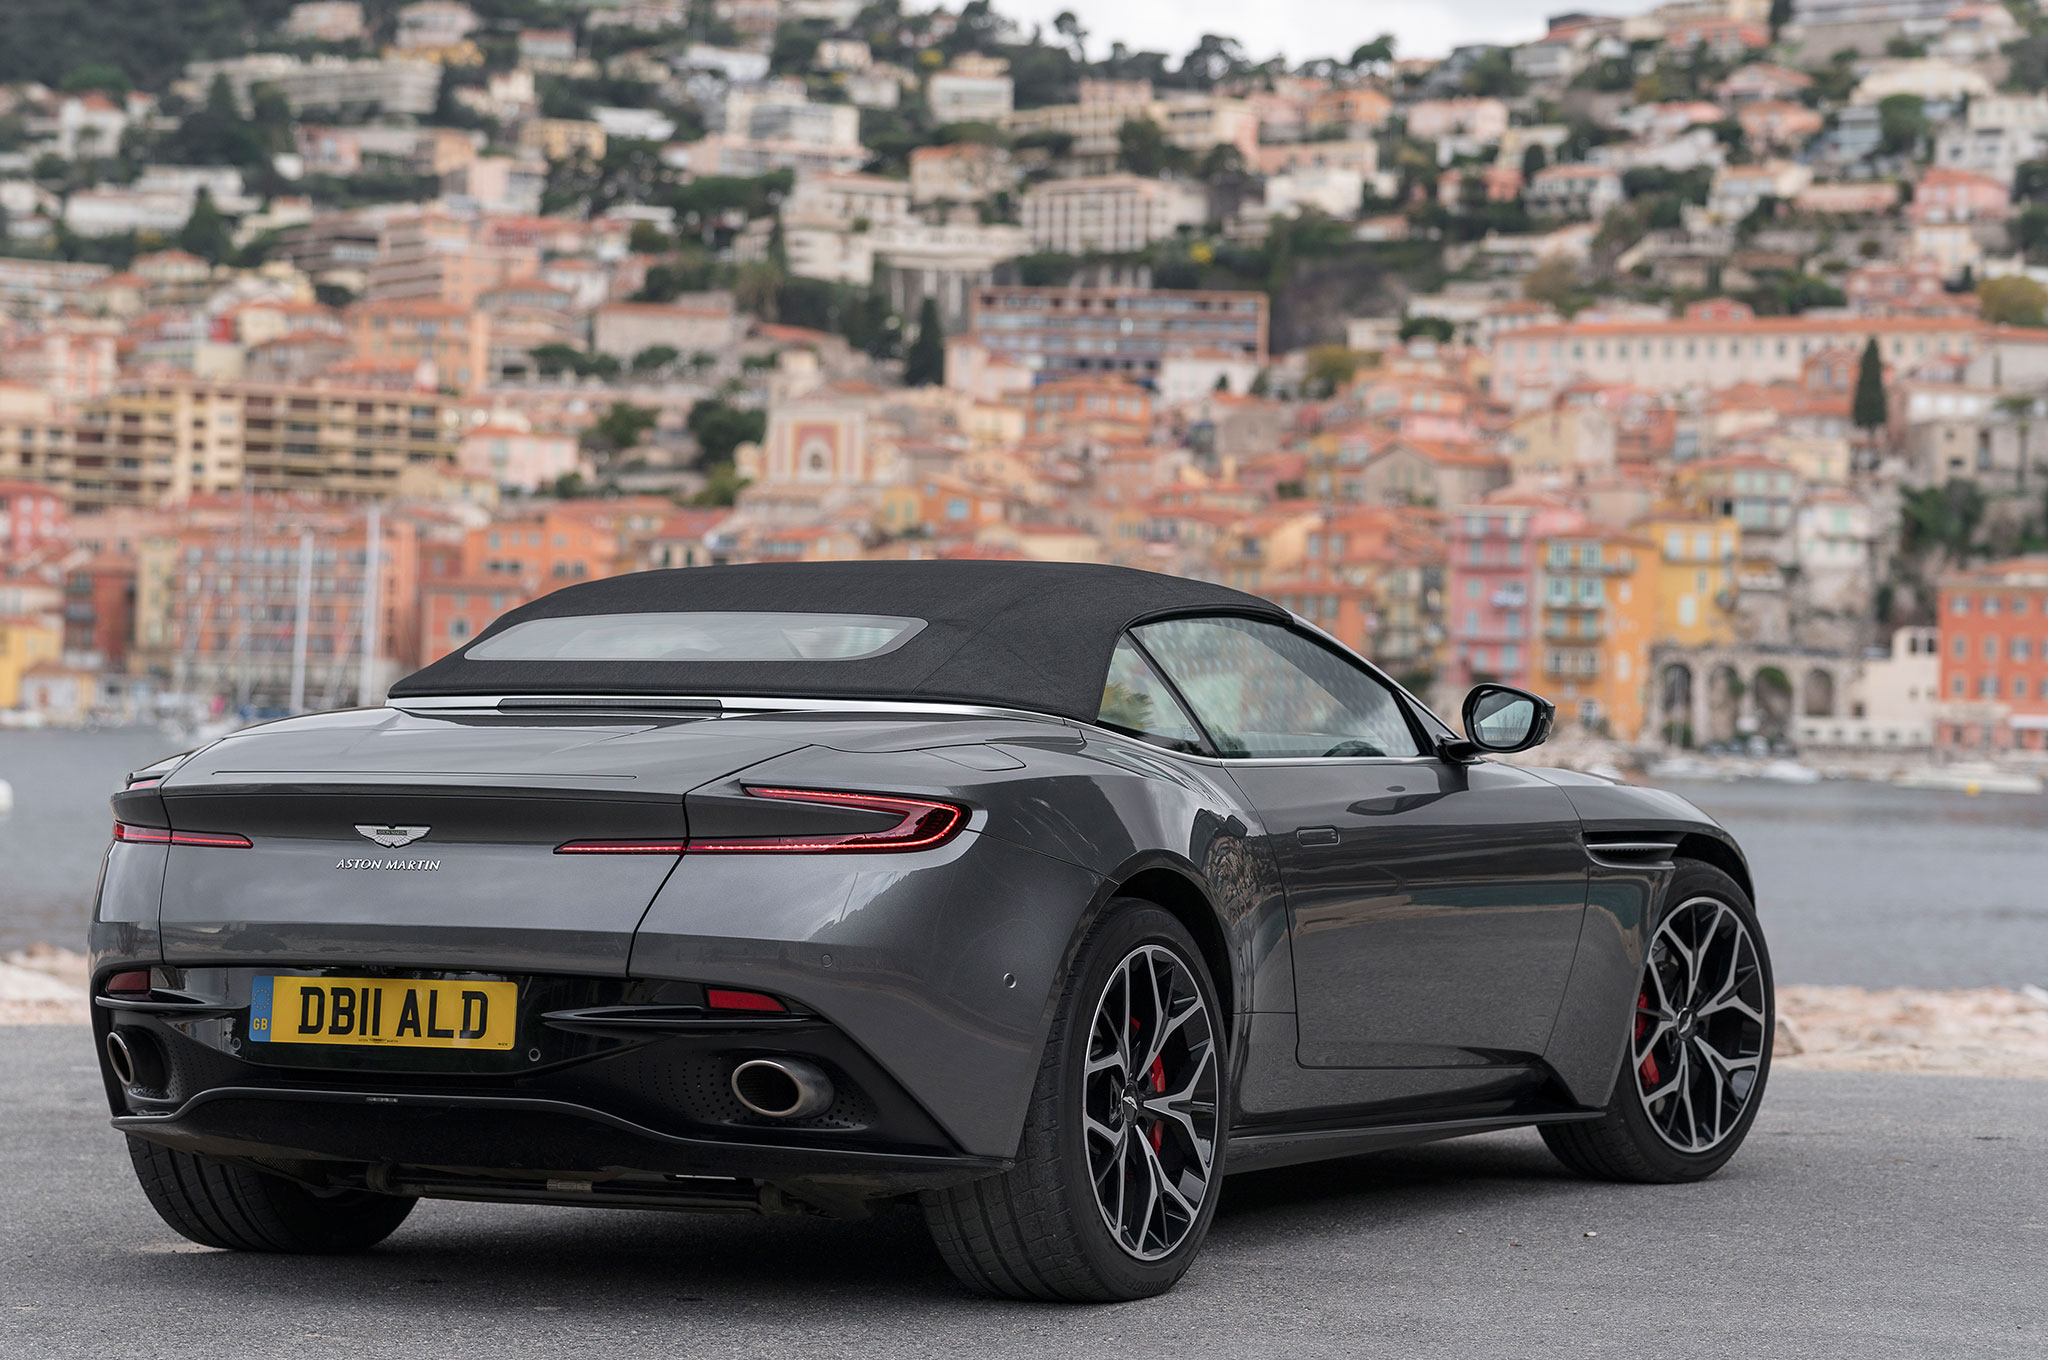 aston martin vantage 2018 side view. 5|91 Aston Martin Vantage 2018 Side View A